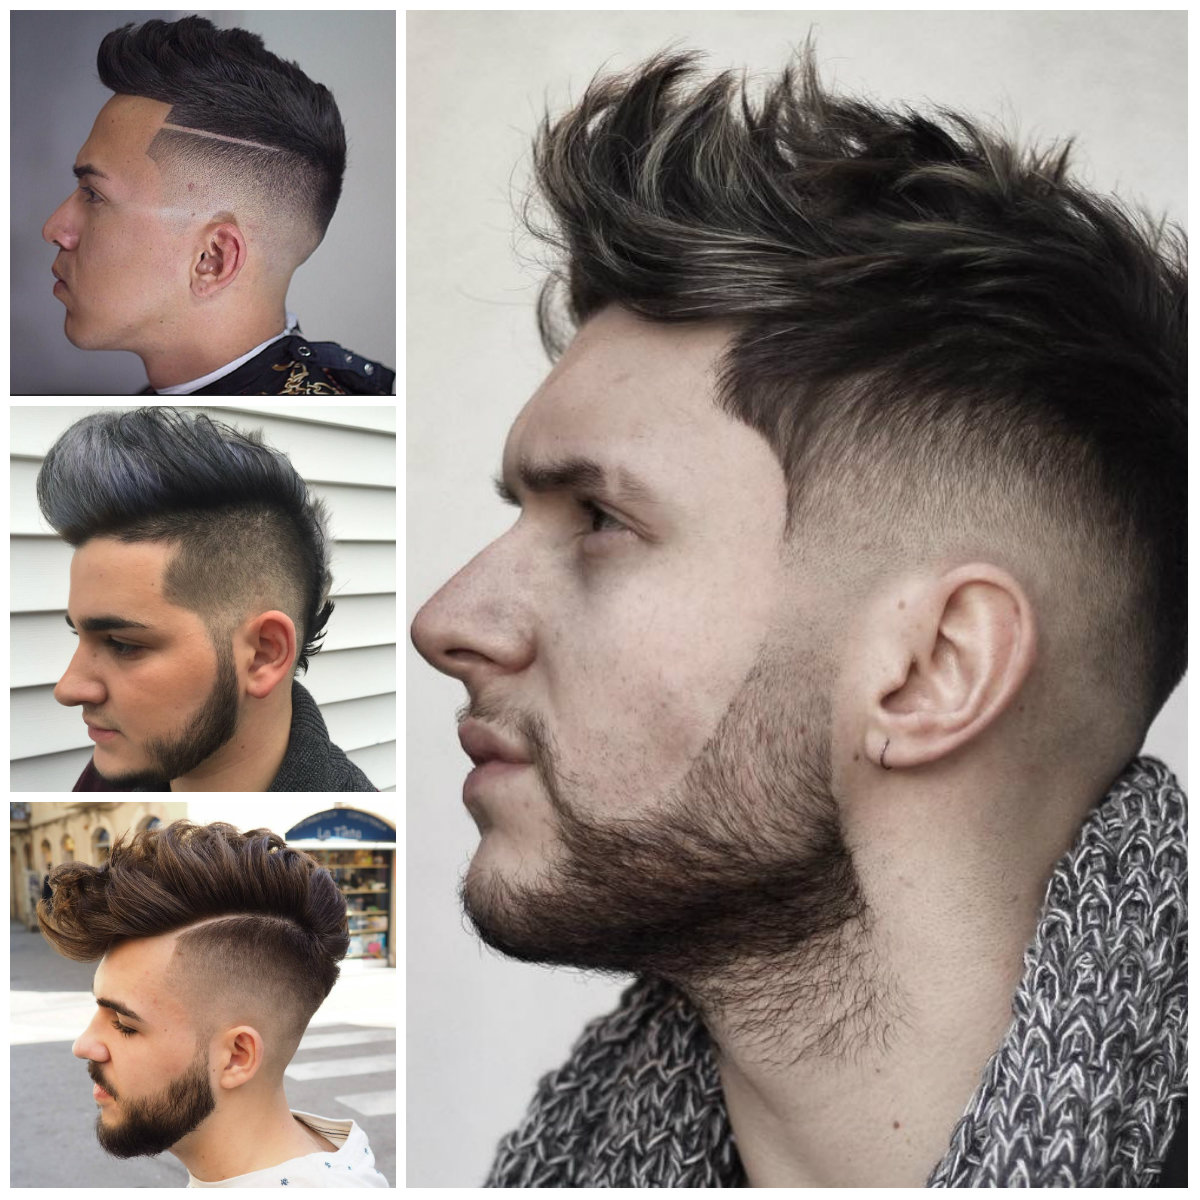 Trendy Hairstyles For Men 2019 Haircuts Hairstyles And Hair Colors